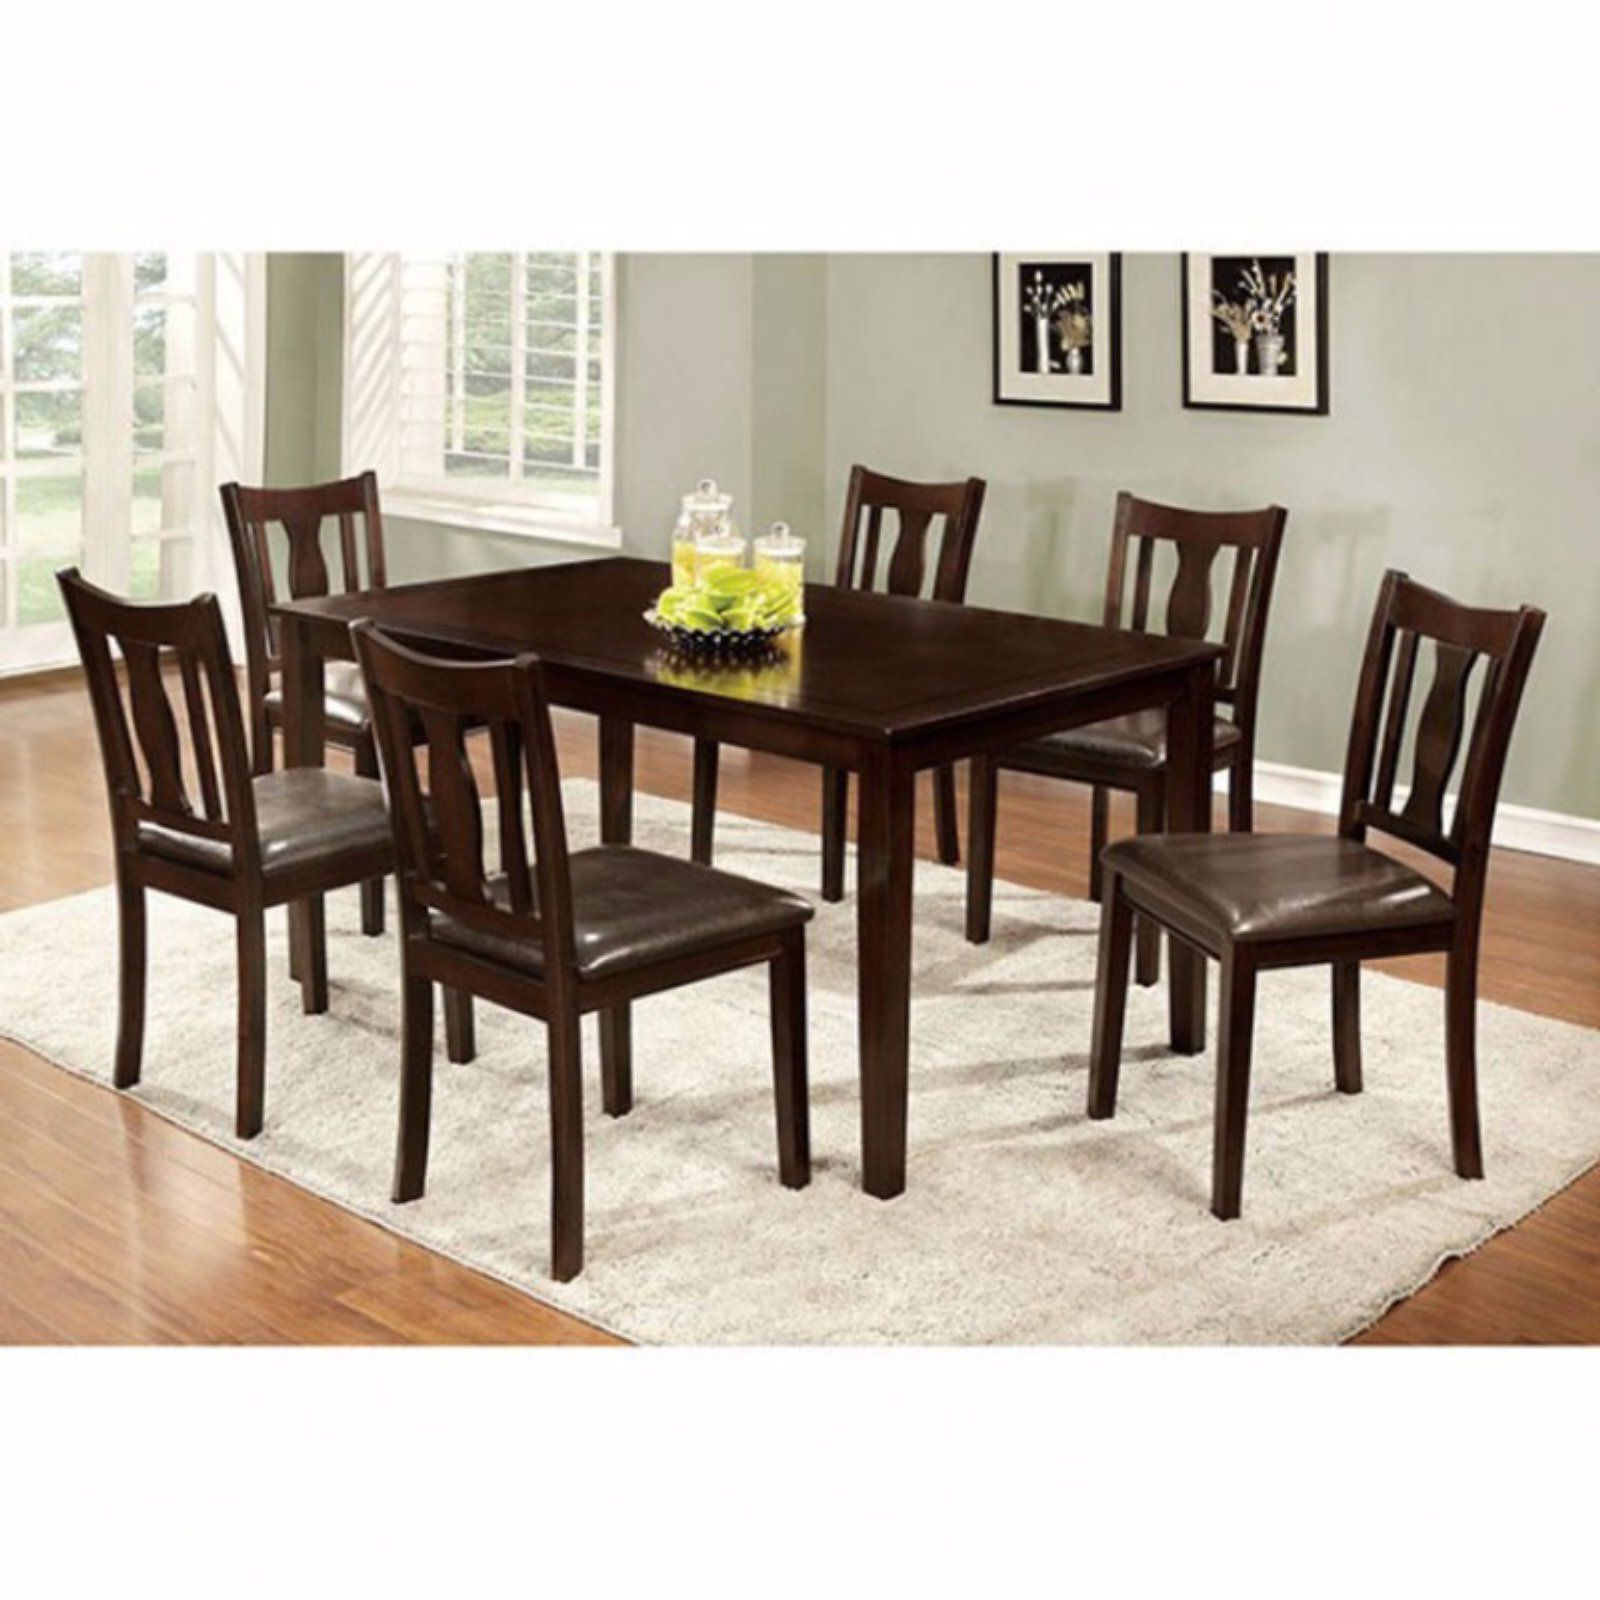 Atwood Transitional Rectangular Dining Tables Throughout Well Liked Benzara 7 Piece Rectangular Faux Leather Dining Table Set In (View 8 of 30)